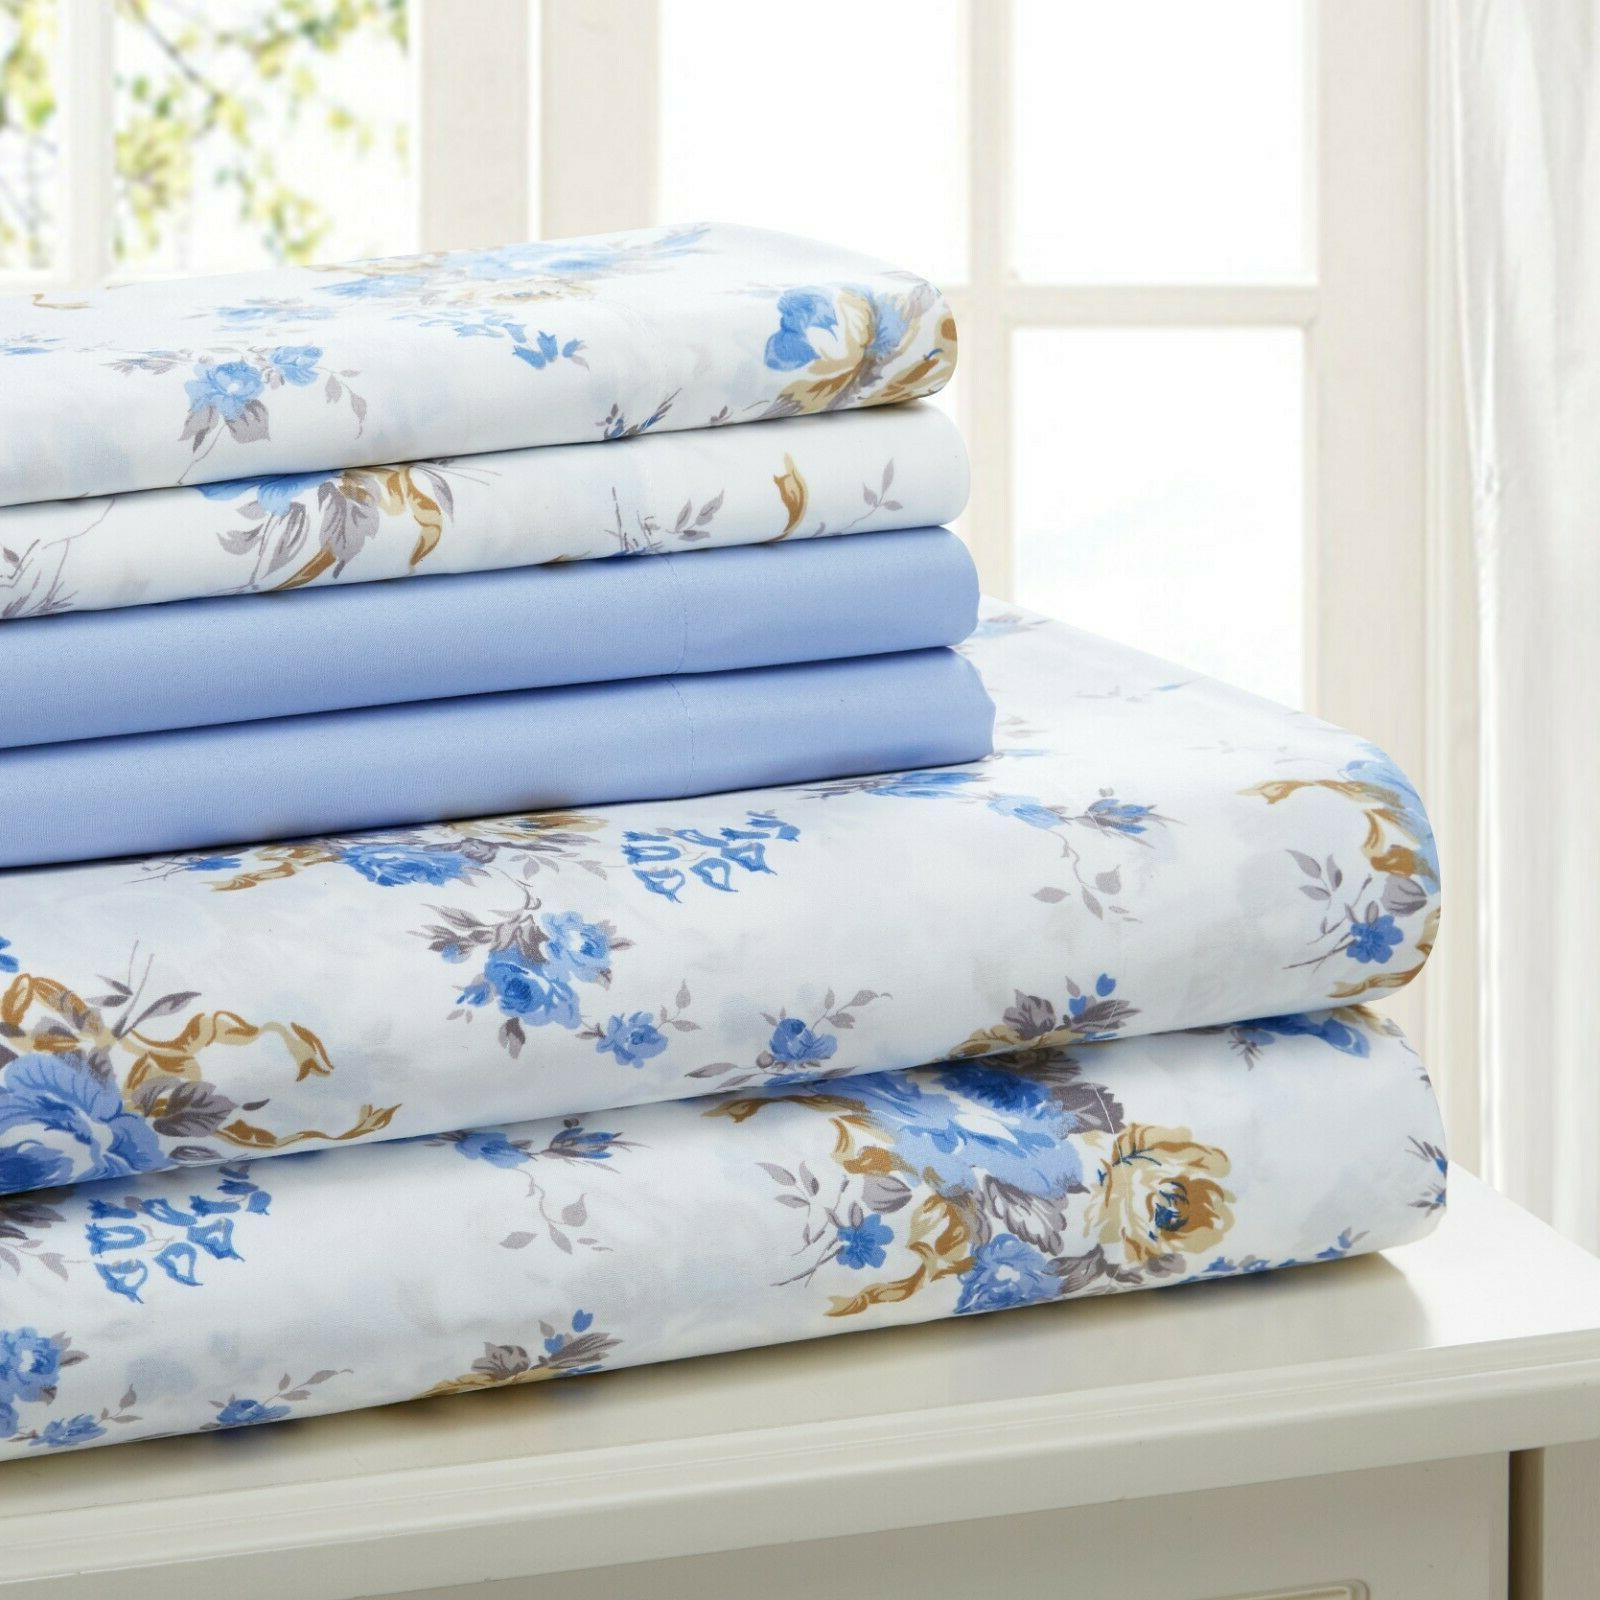 COTTON PERCALE 6 SHEET SET TWIN FULL KING FREE CLOTH